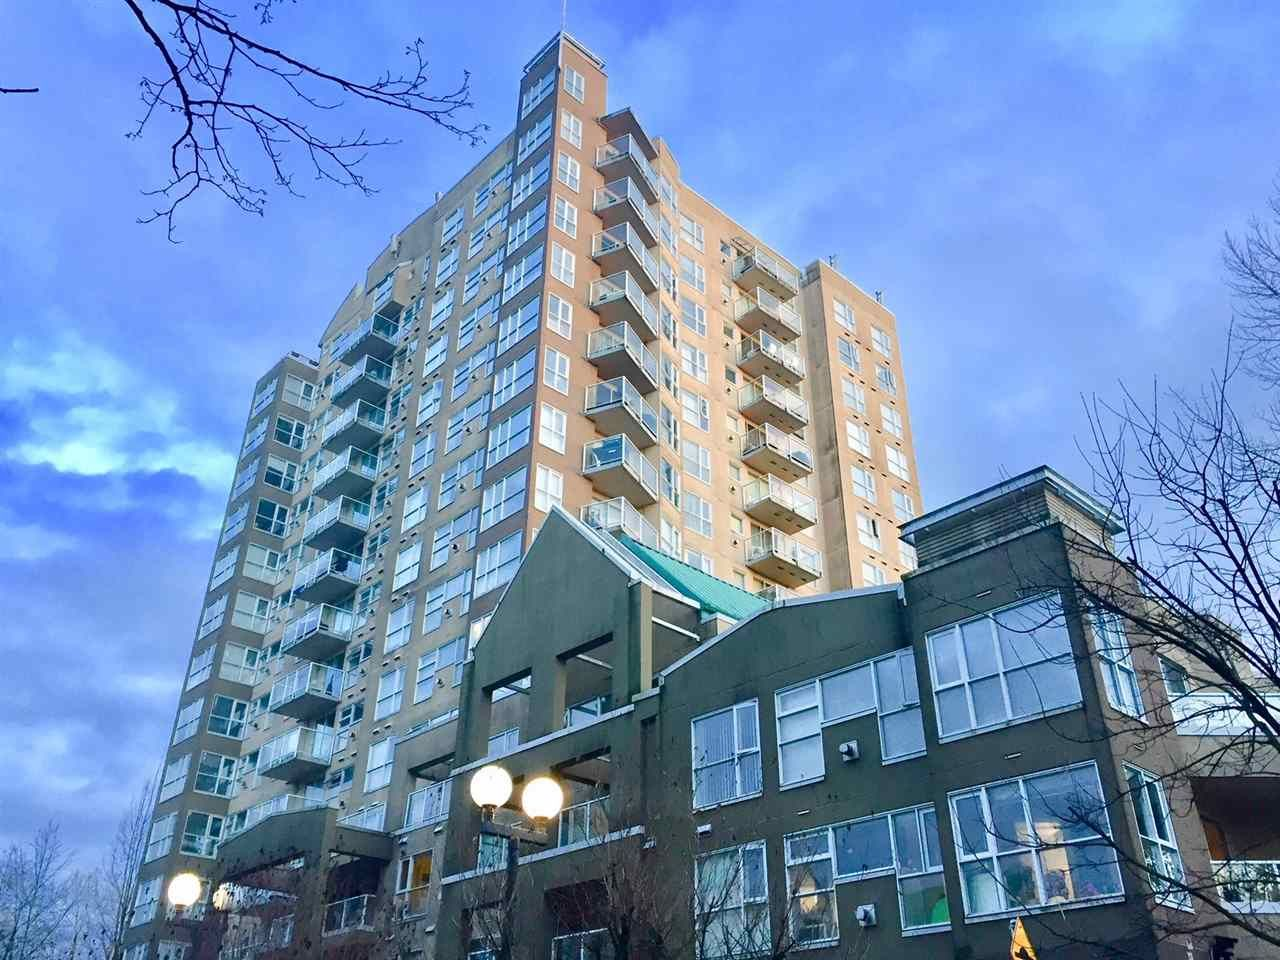 """Main Photo: 903 9830 WHALLEY Boulevard in Surrey: Whalley Condo for sale in """"KING GEORGE PARK"""" (North Surrey)  : MLS®# R2237464"""